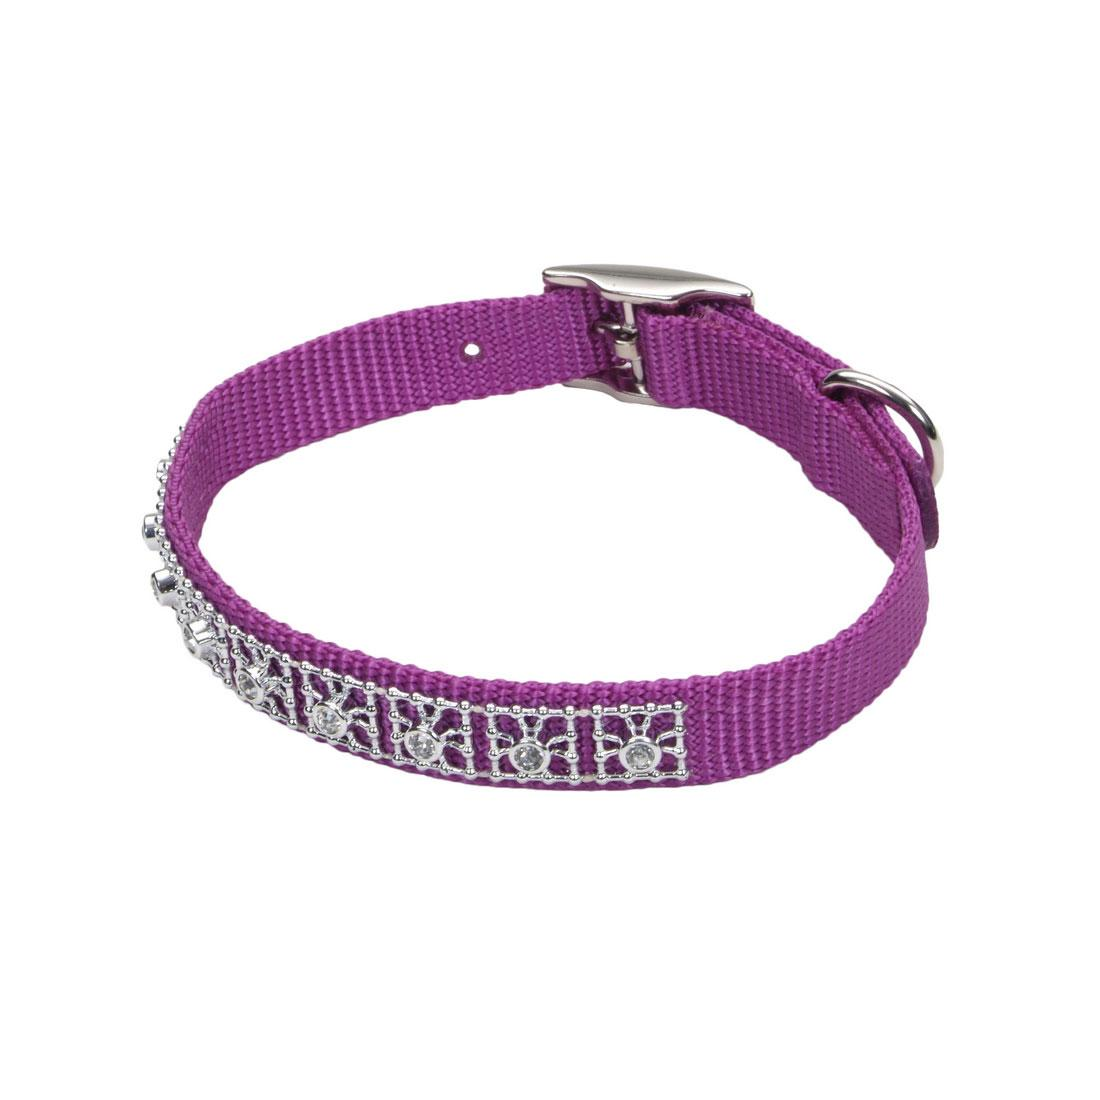 Coastal Jeweled Dog Collar, Orchid Image